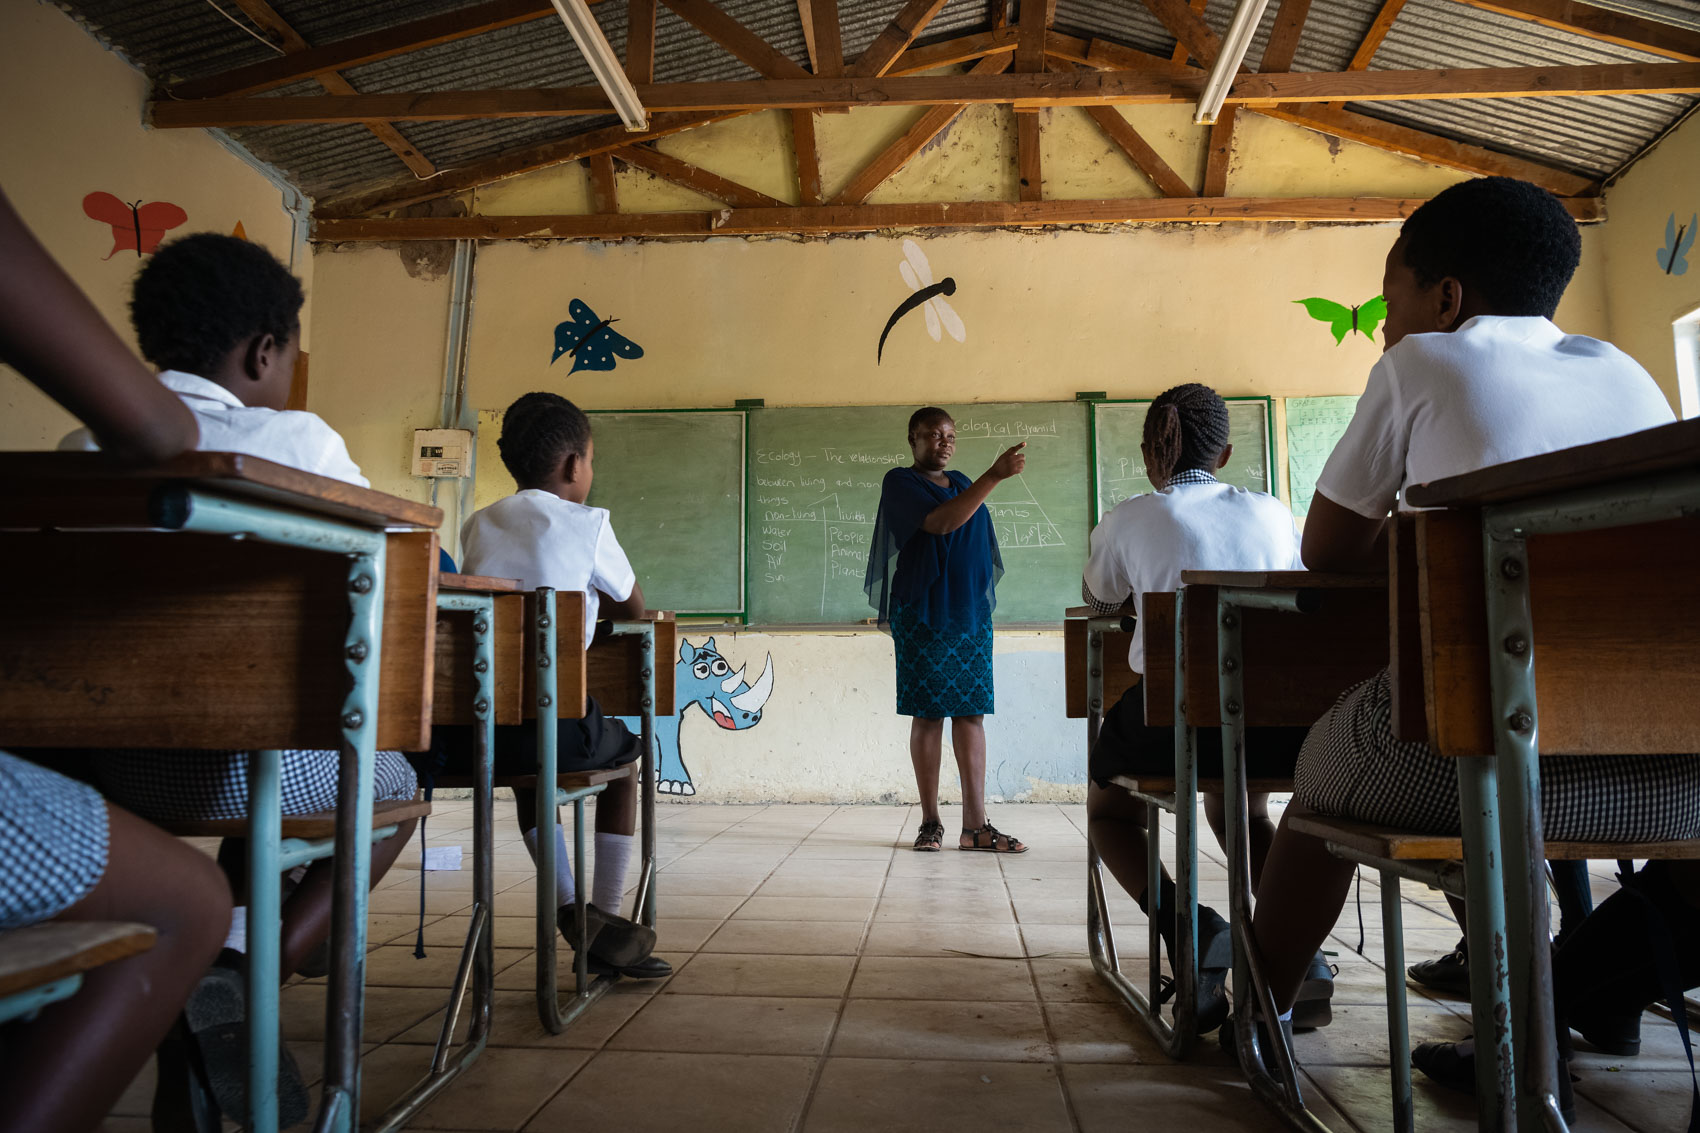 A teacher points and children listen in a classroom in South Africa